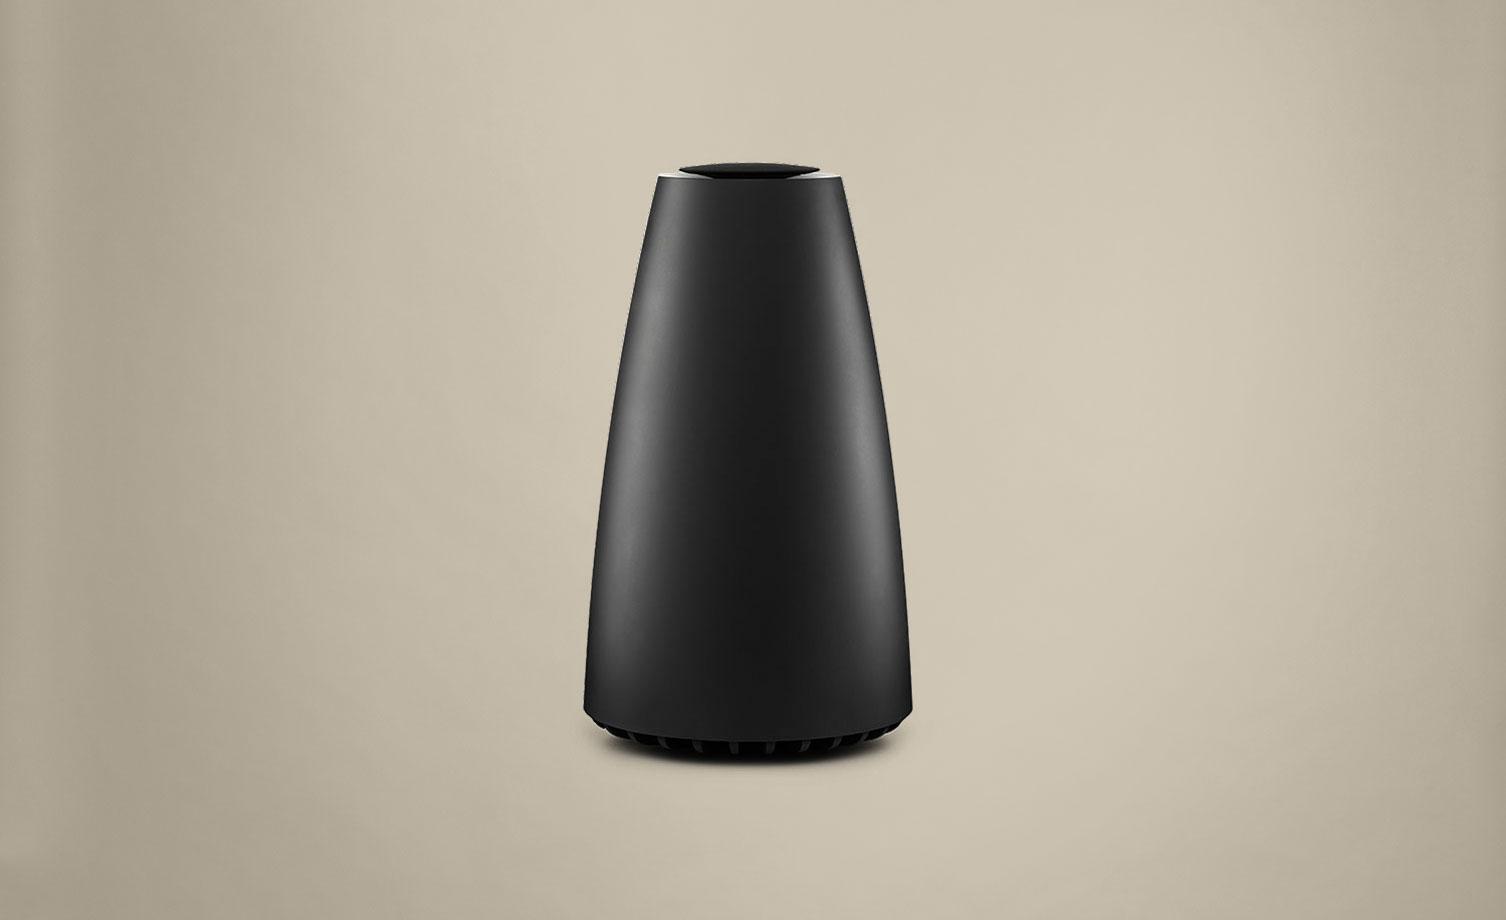 BeoPlay S8